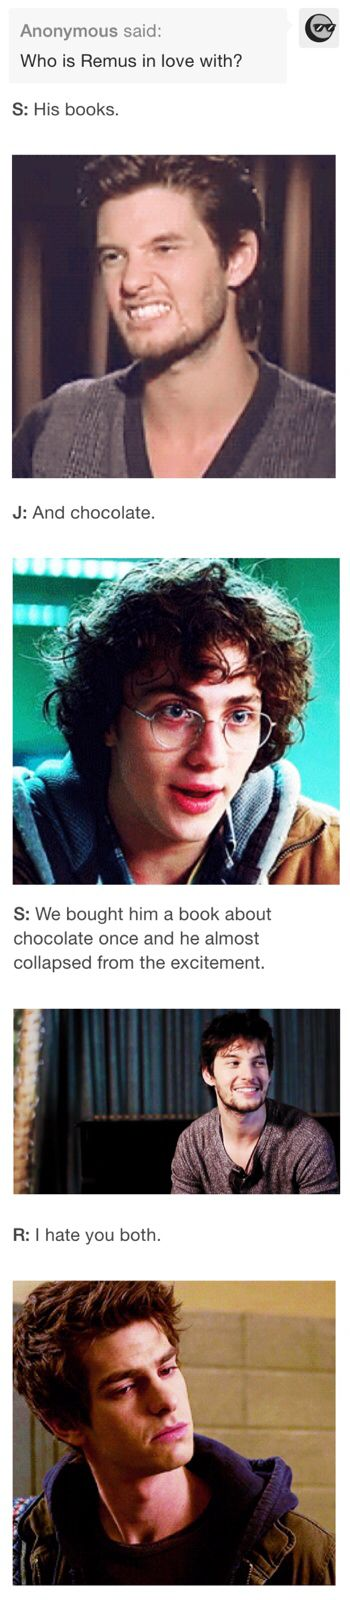 Haha Marauders - I still think that Andrew Garfield would be the PERFECT young Remus :)